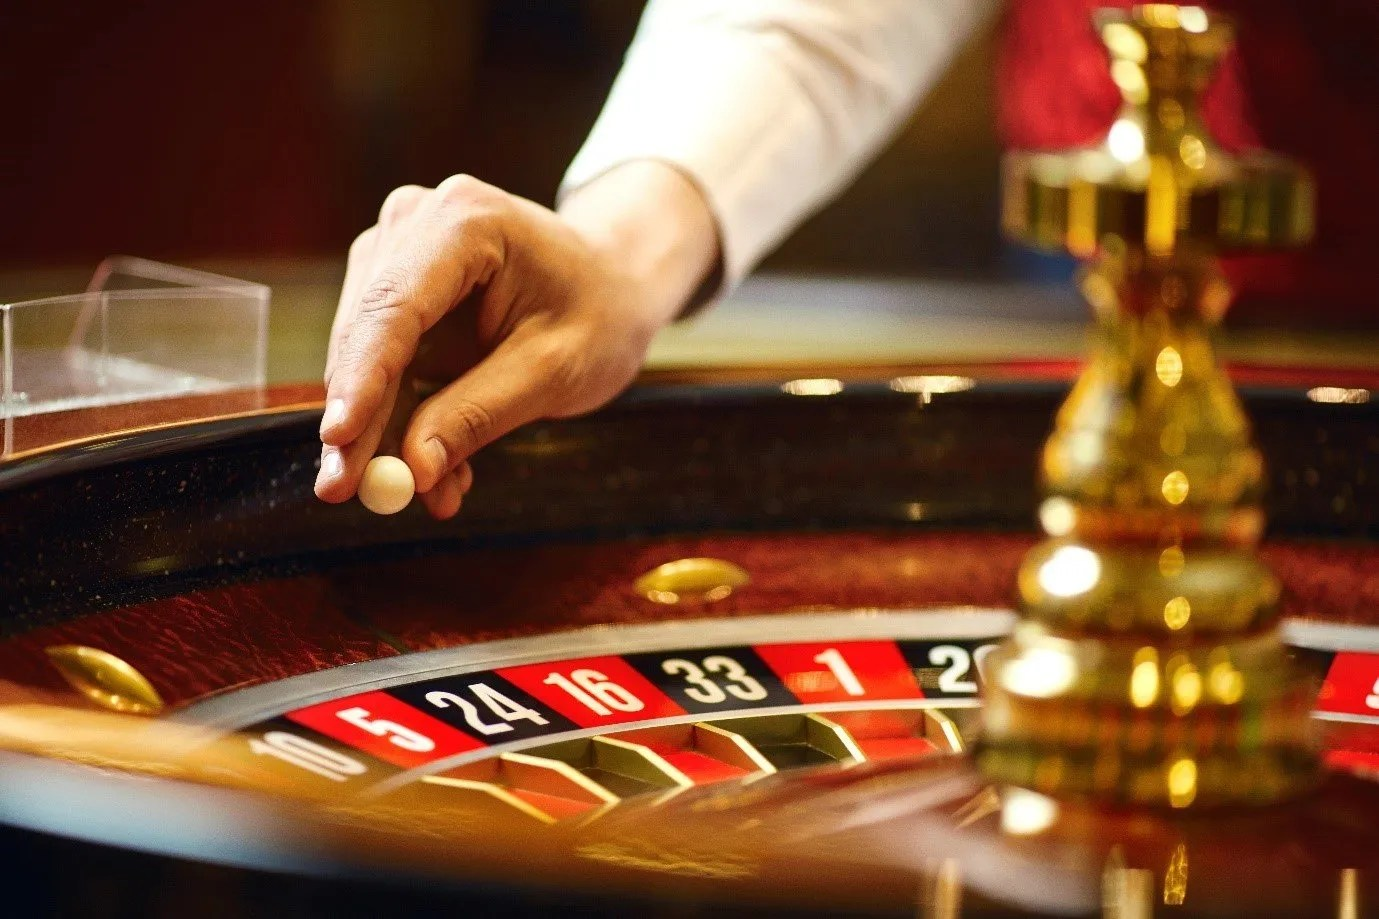 5 interesting facts about Roulette that you might not know - LoveBelfast